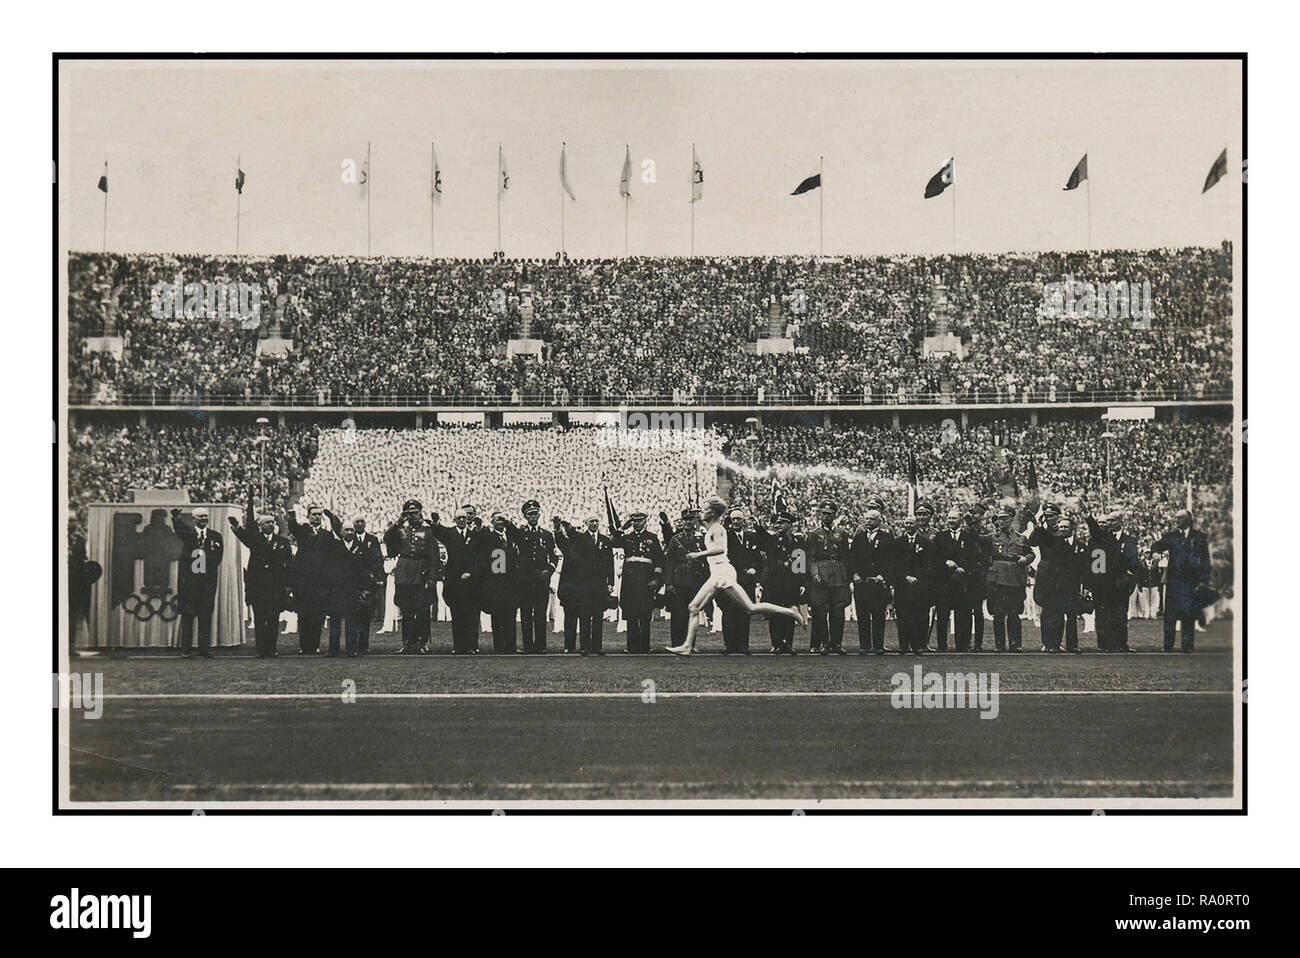 Vintage 1936 Nazi Berlin Germany Olympic Games. German Reich Olympia Postcard 'Torch Relay Runner Arrives at the Stadium', Berlin Olympic Stadium Germany - Stock Image